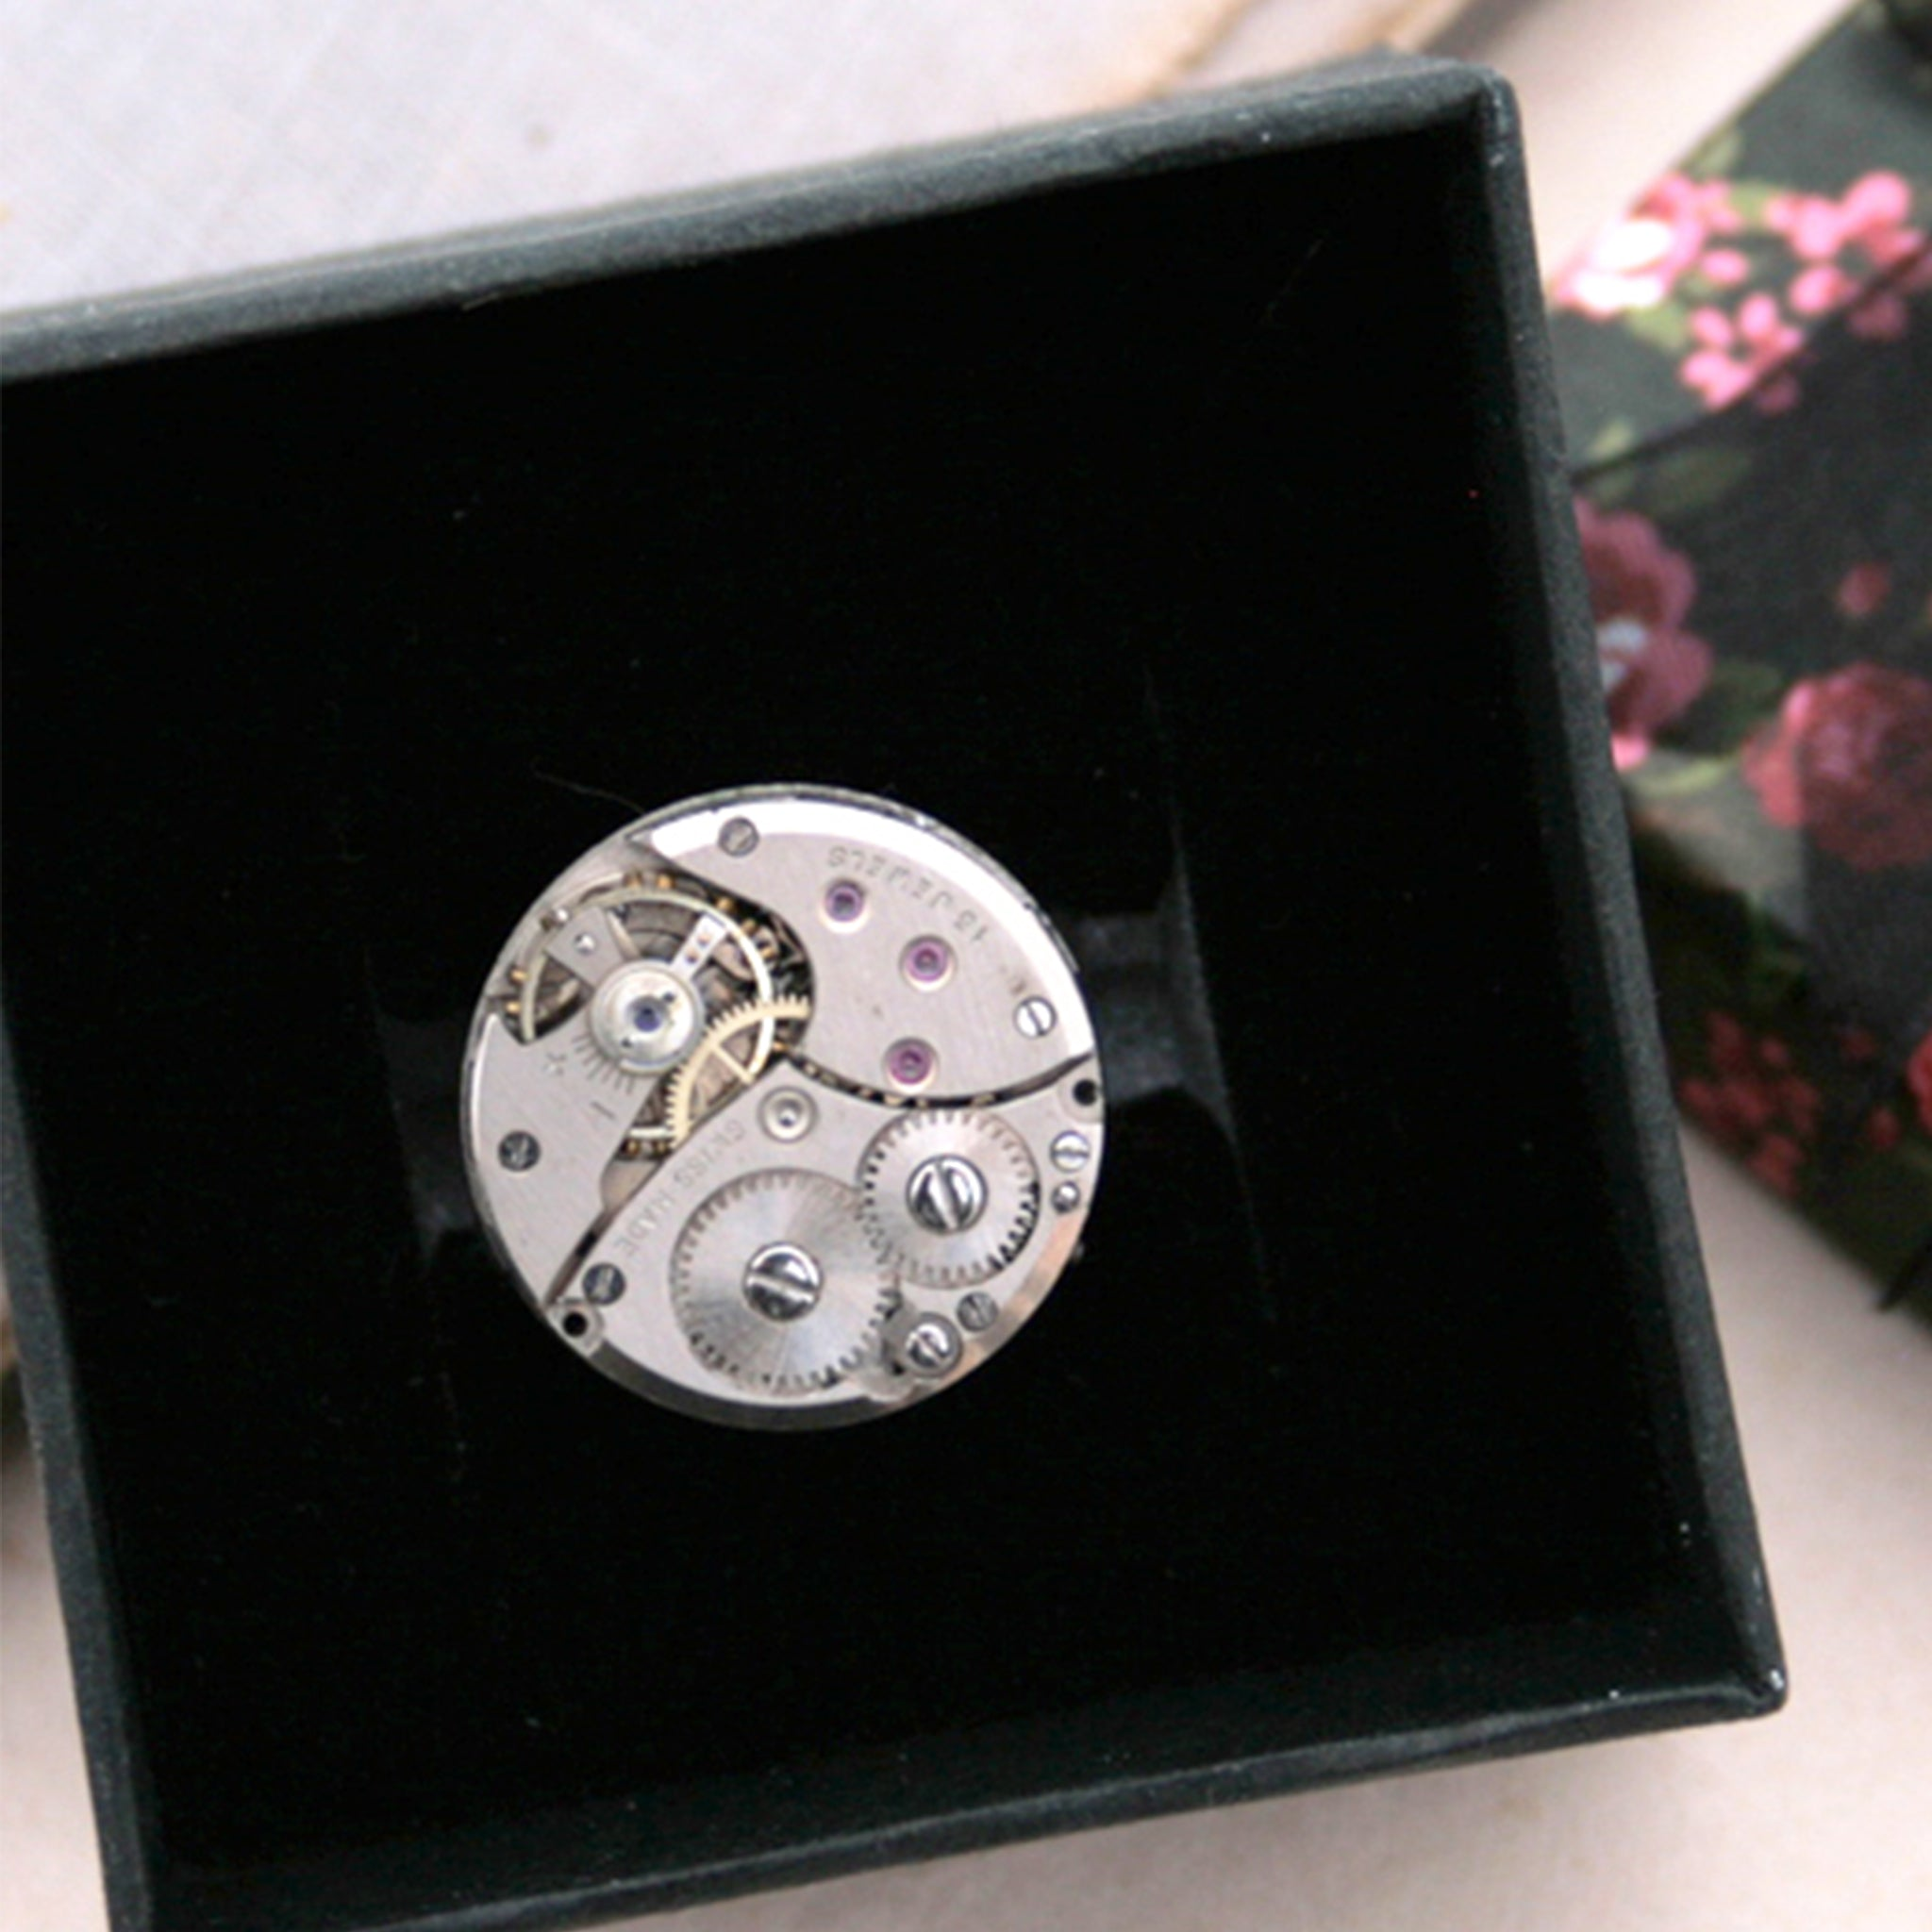 steampunk ring made of a real Swiss watch mechanism in a box